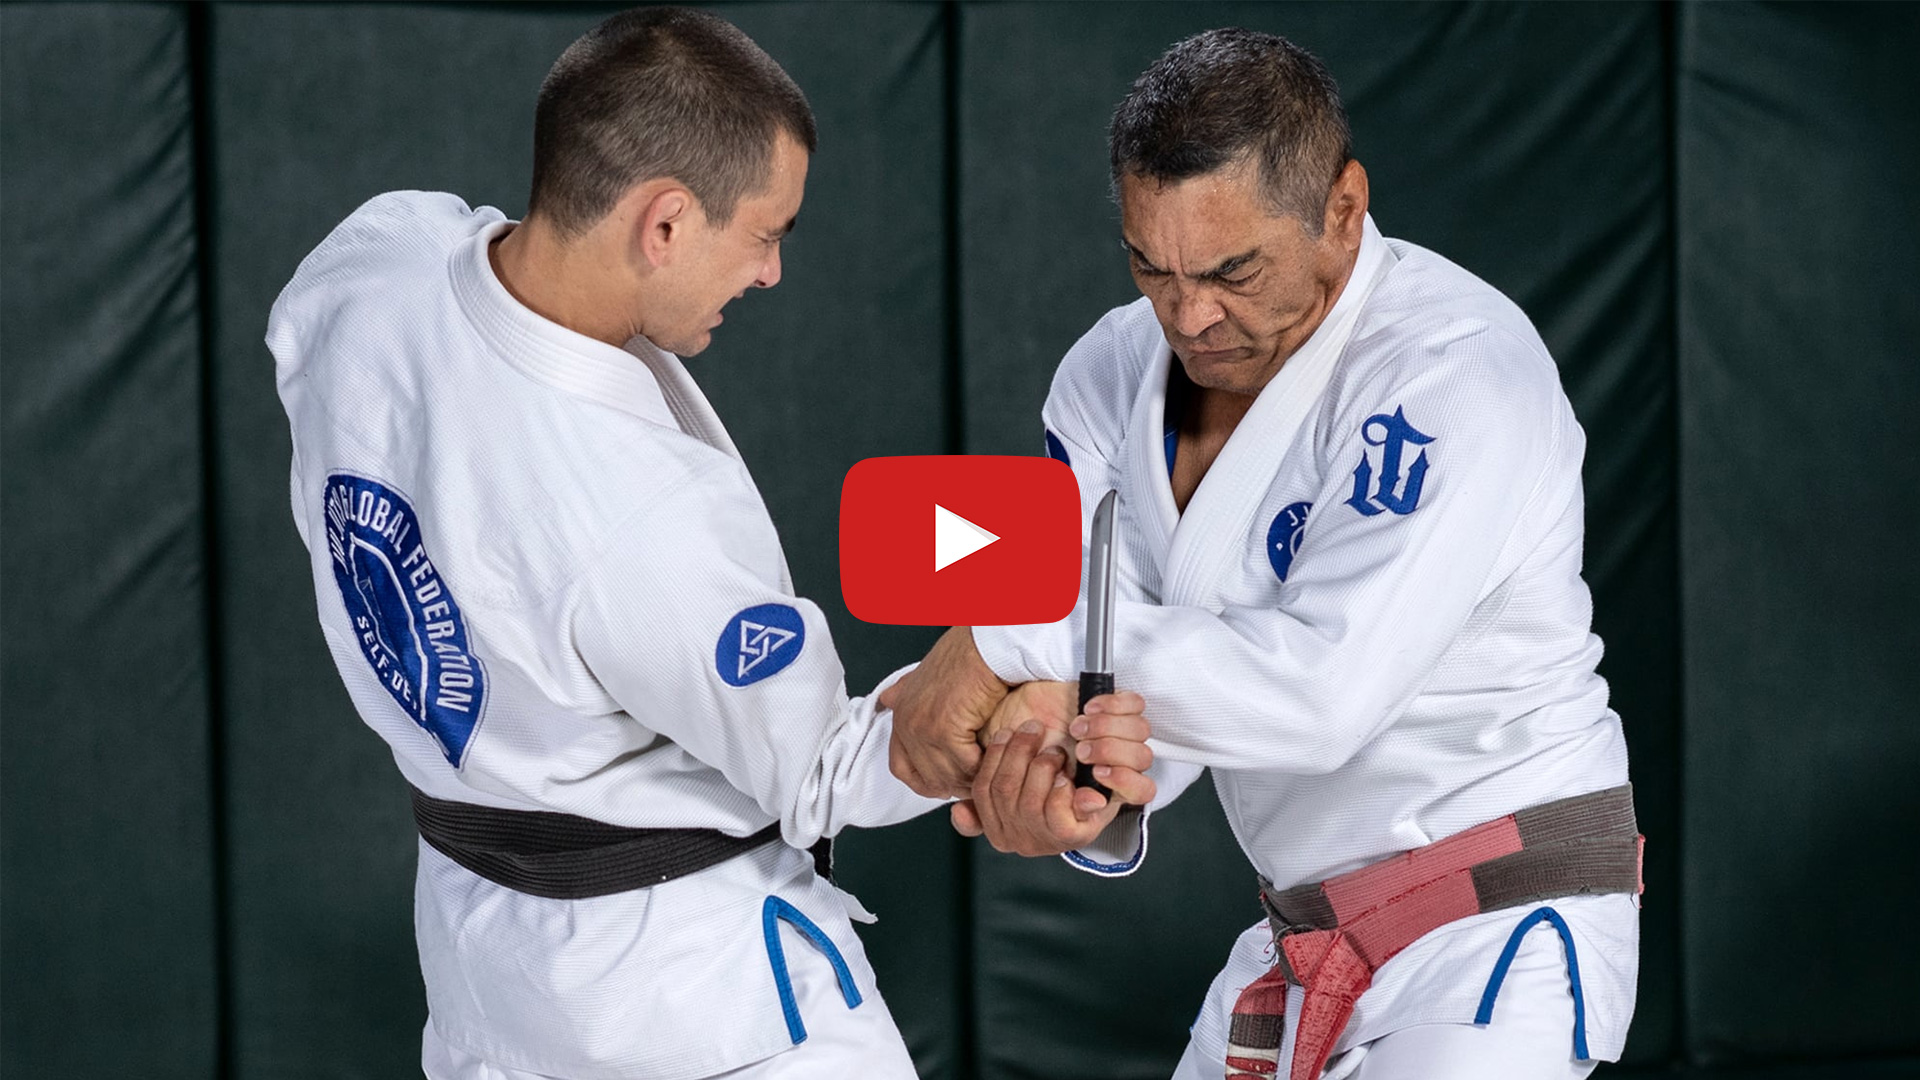 Rickson Gracie presents The Guard video lessons